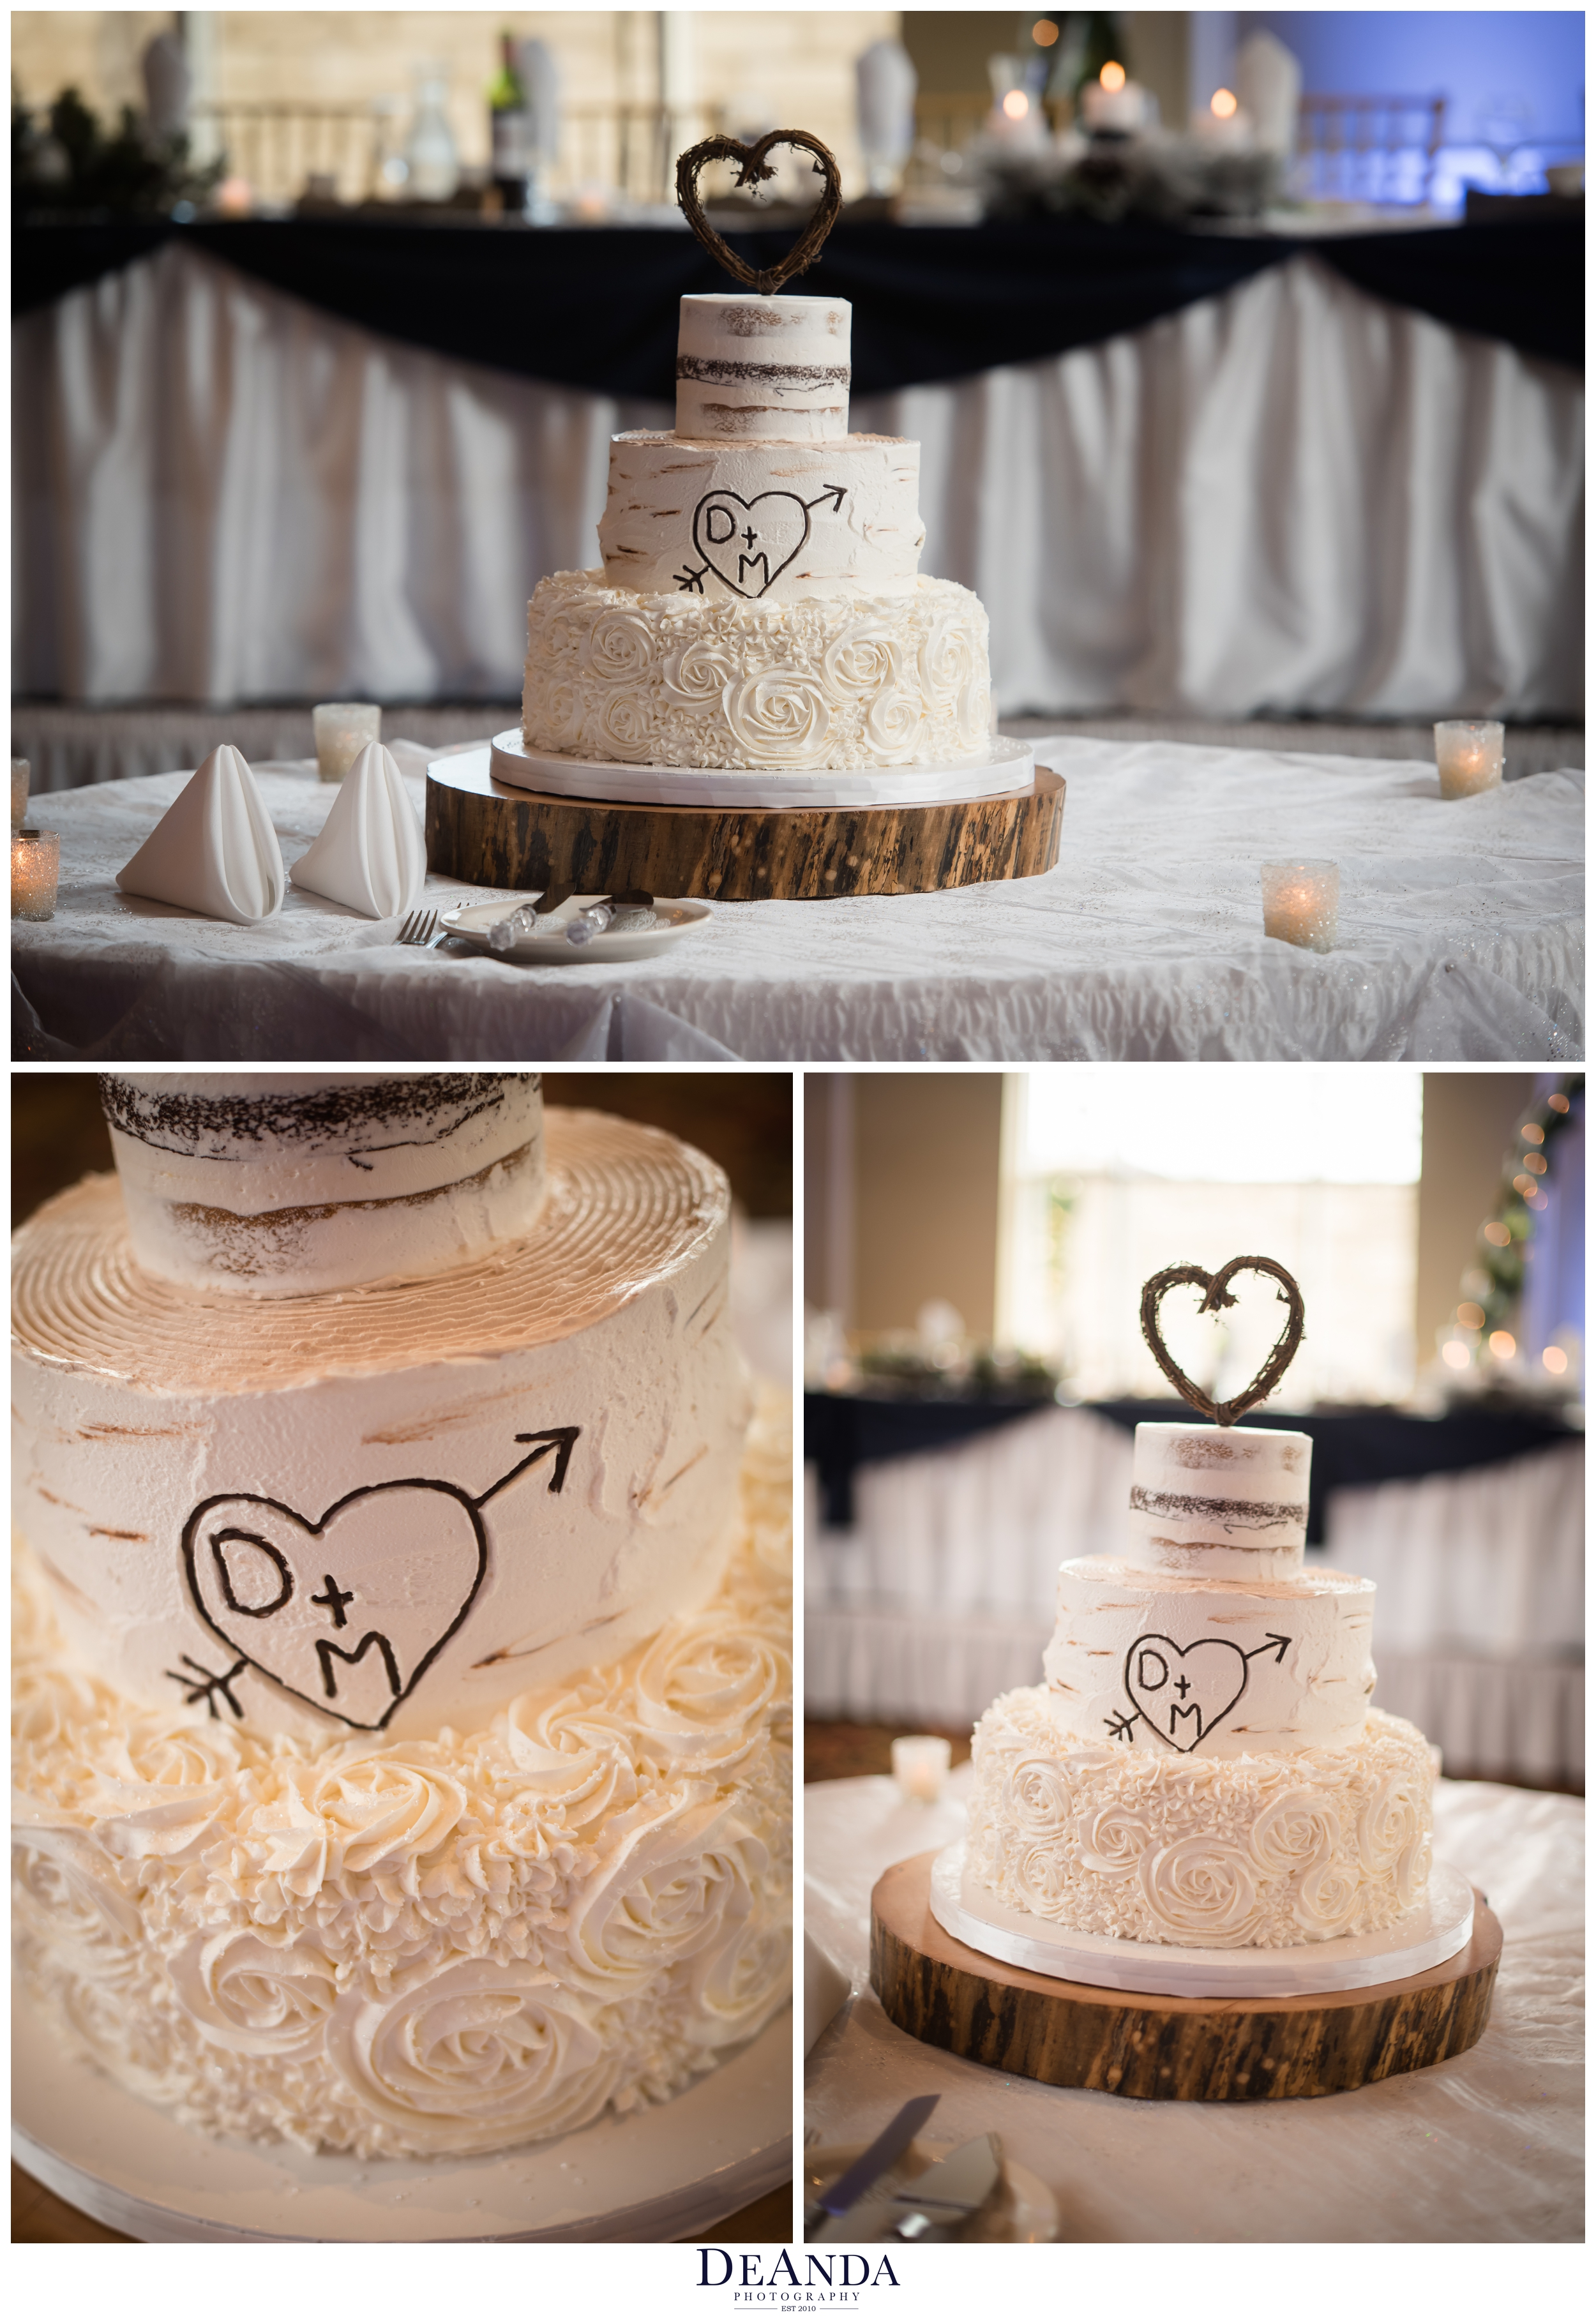 creative cakes wedding cake with rustic touches